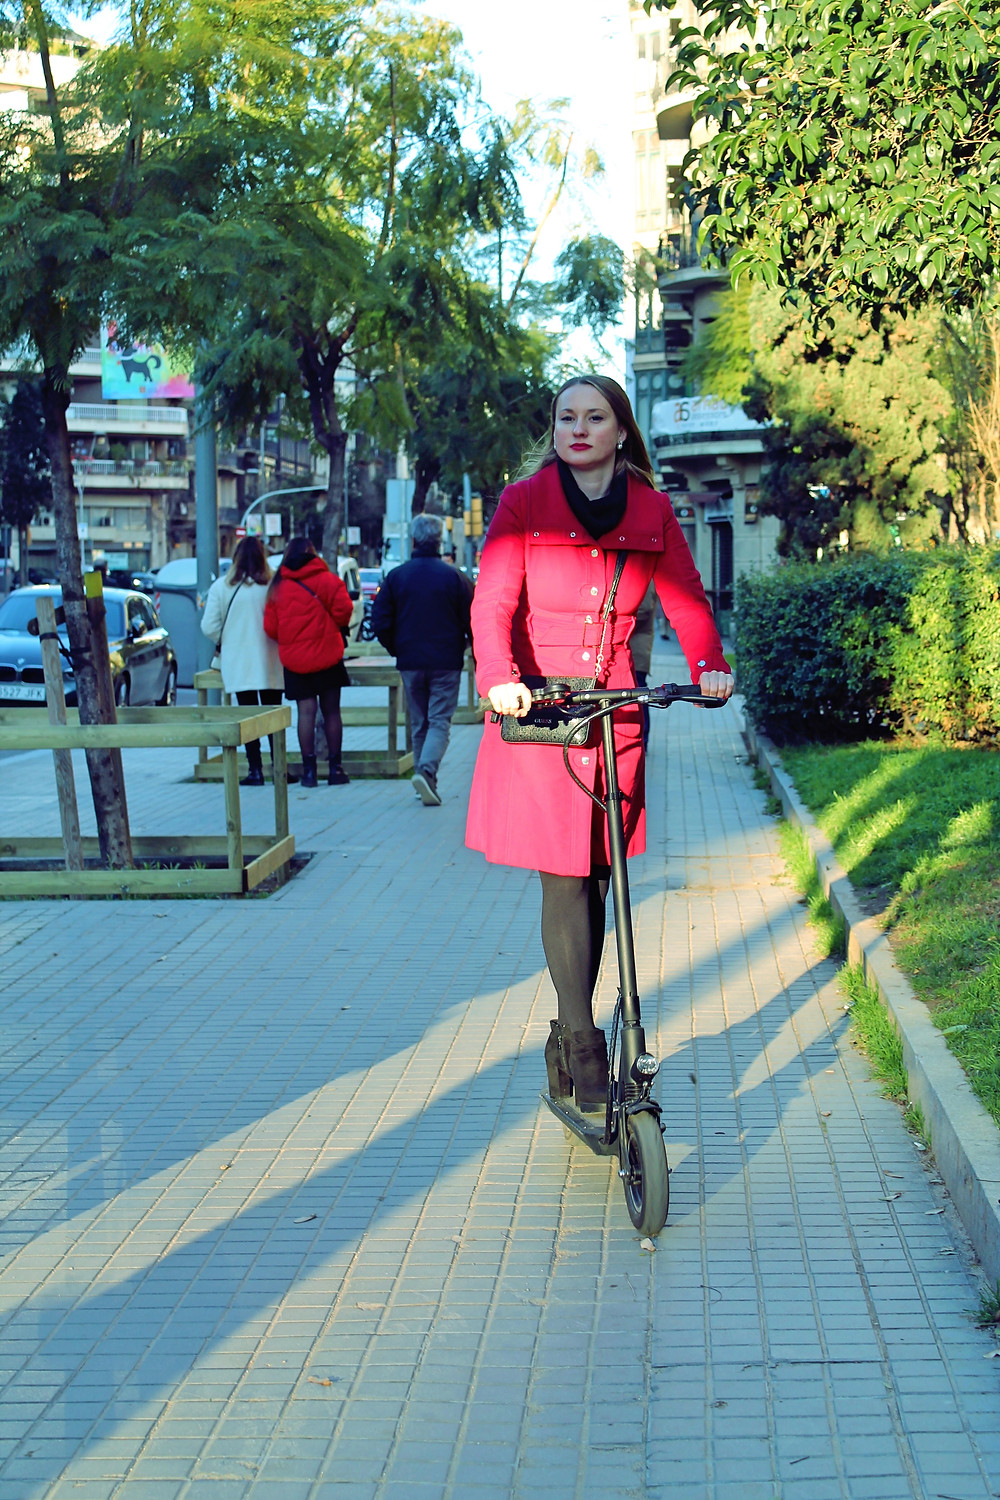 Joyor Electric Scooter city tourism